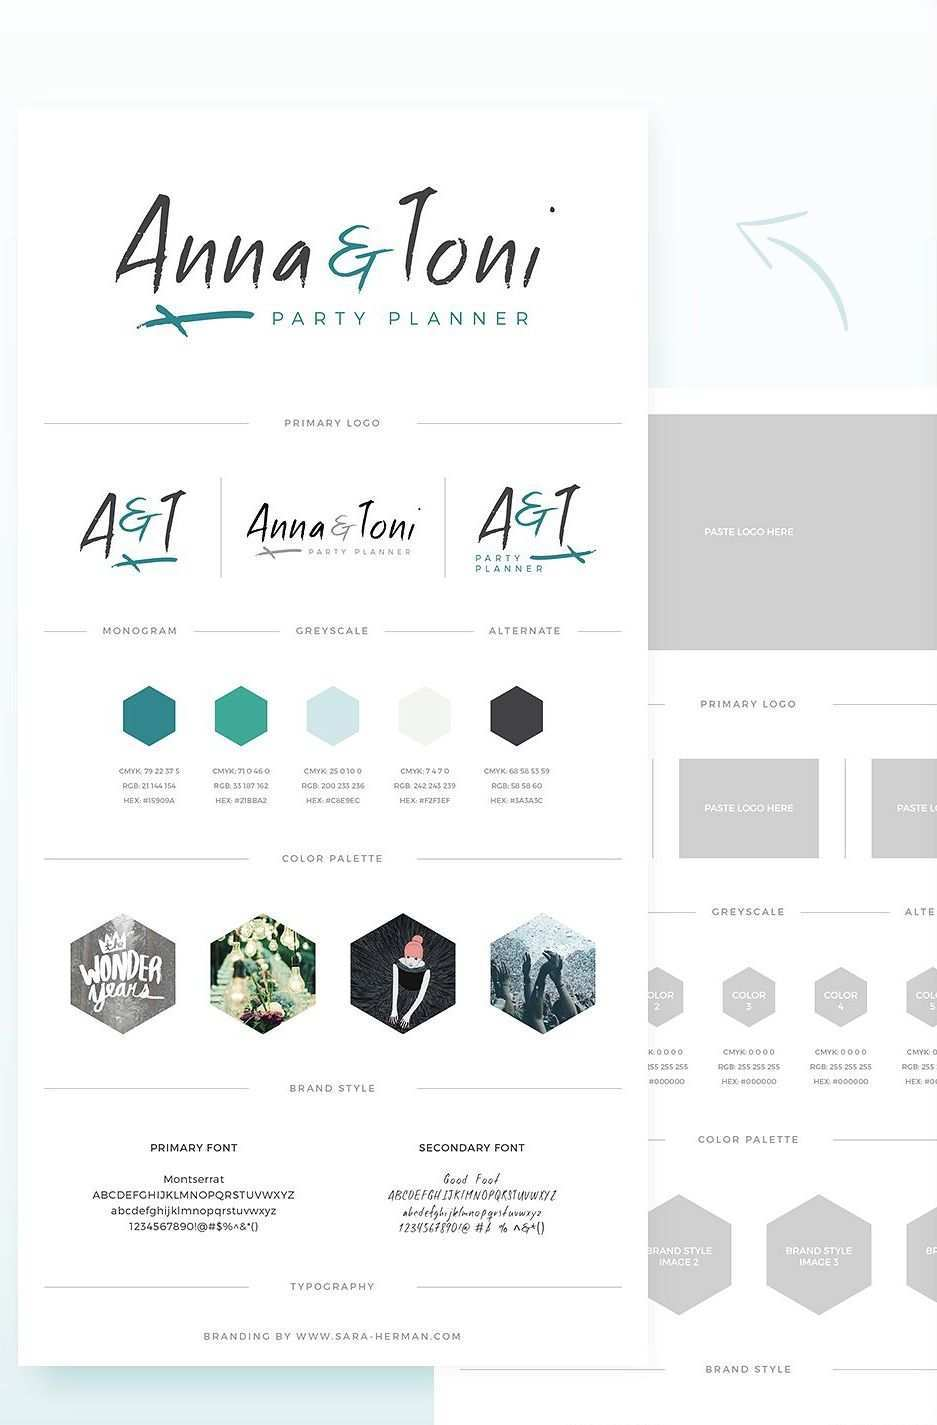 Brand Board Style Tile 5 Branding Design Inspiration Party Planners Logo Logo Design Free